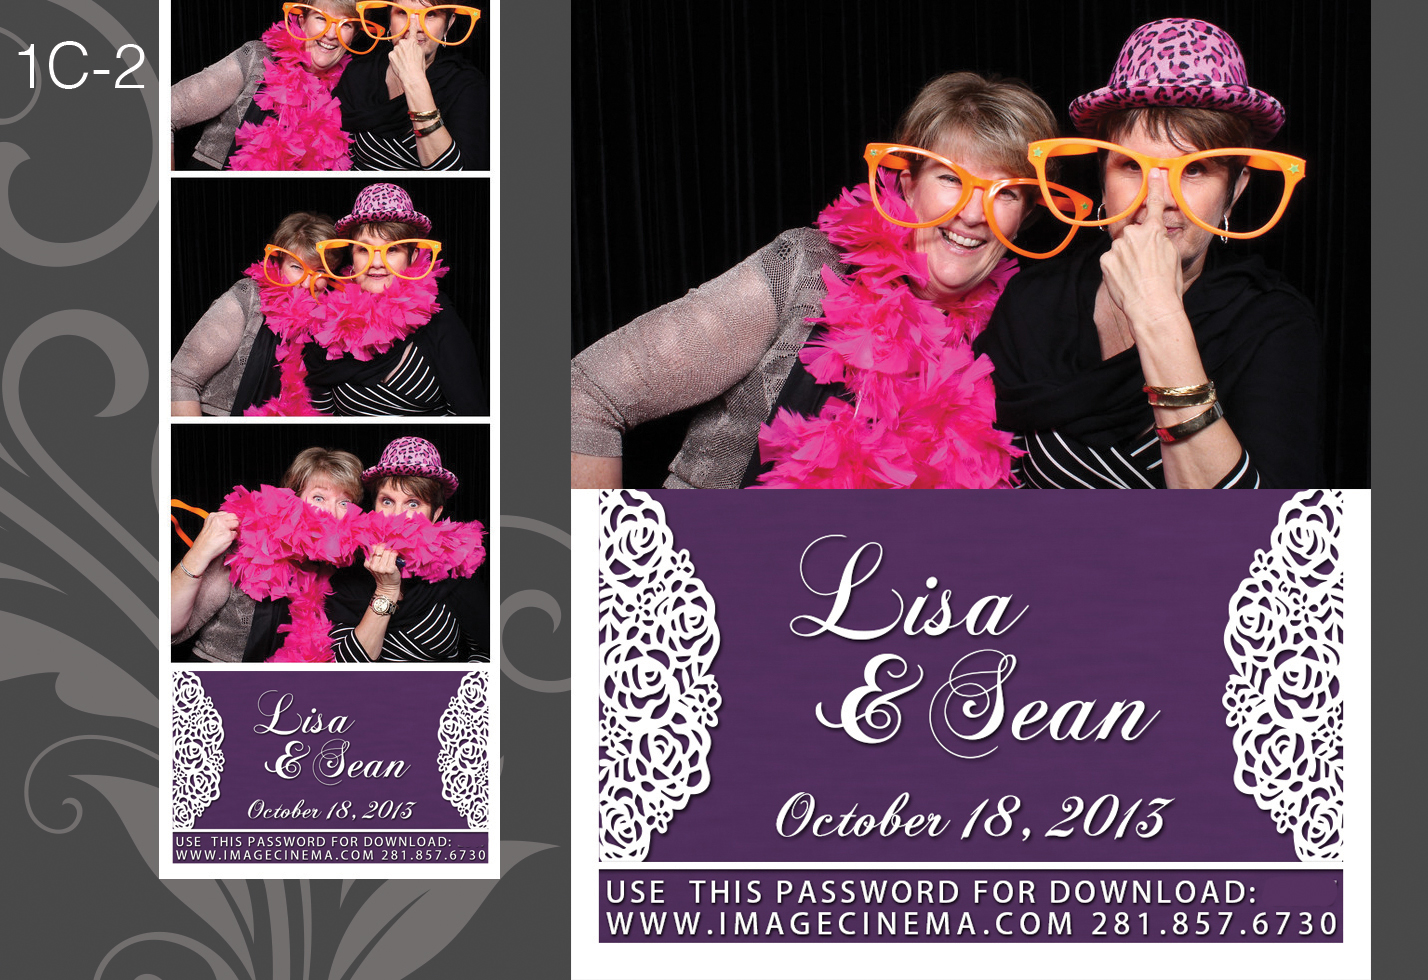 Photo Booth 1C-2